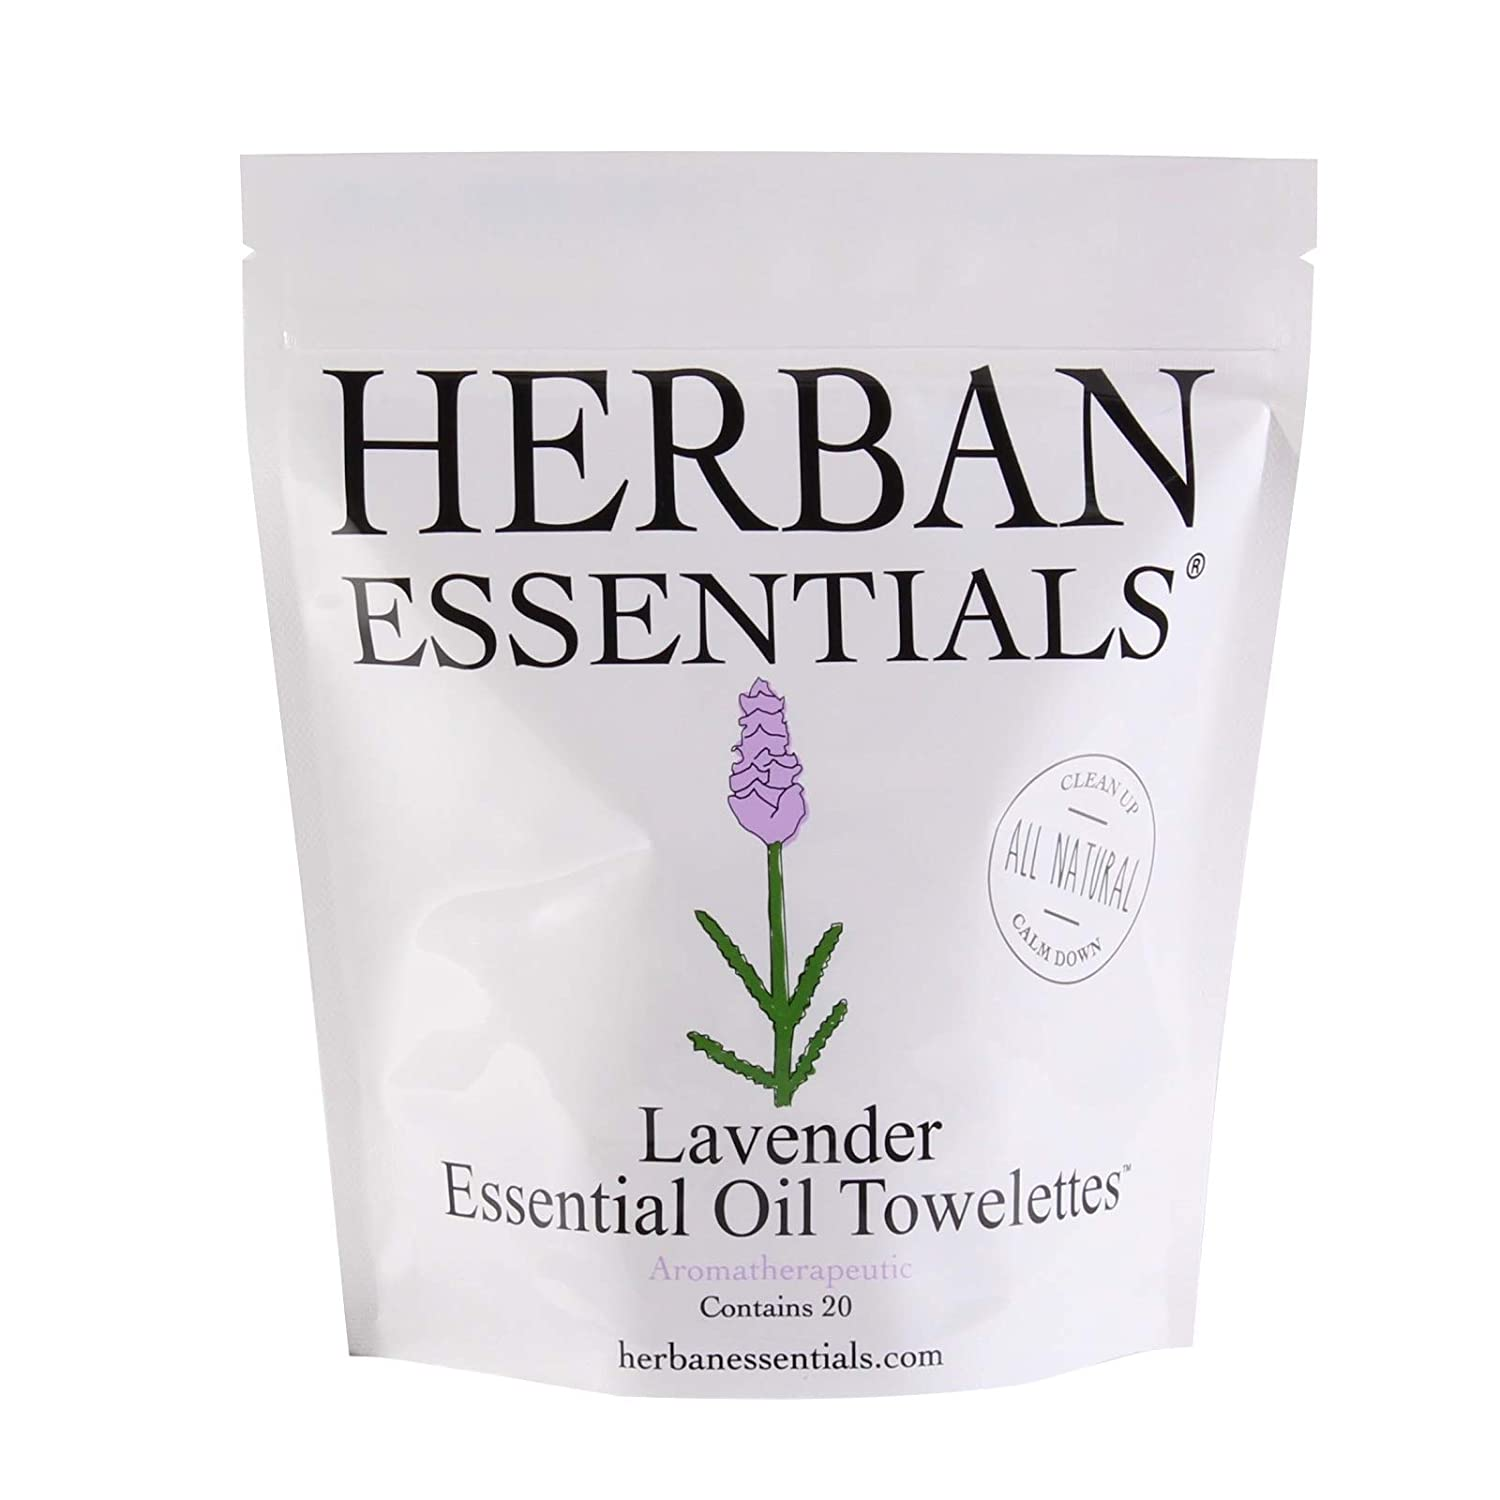 Herban Essential Lavender Essential Oil Towlettes -20ct 00835762000056